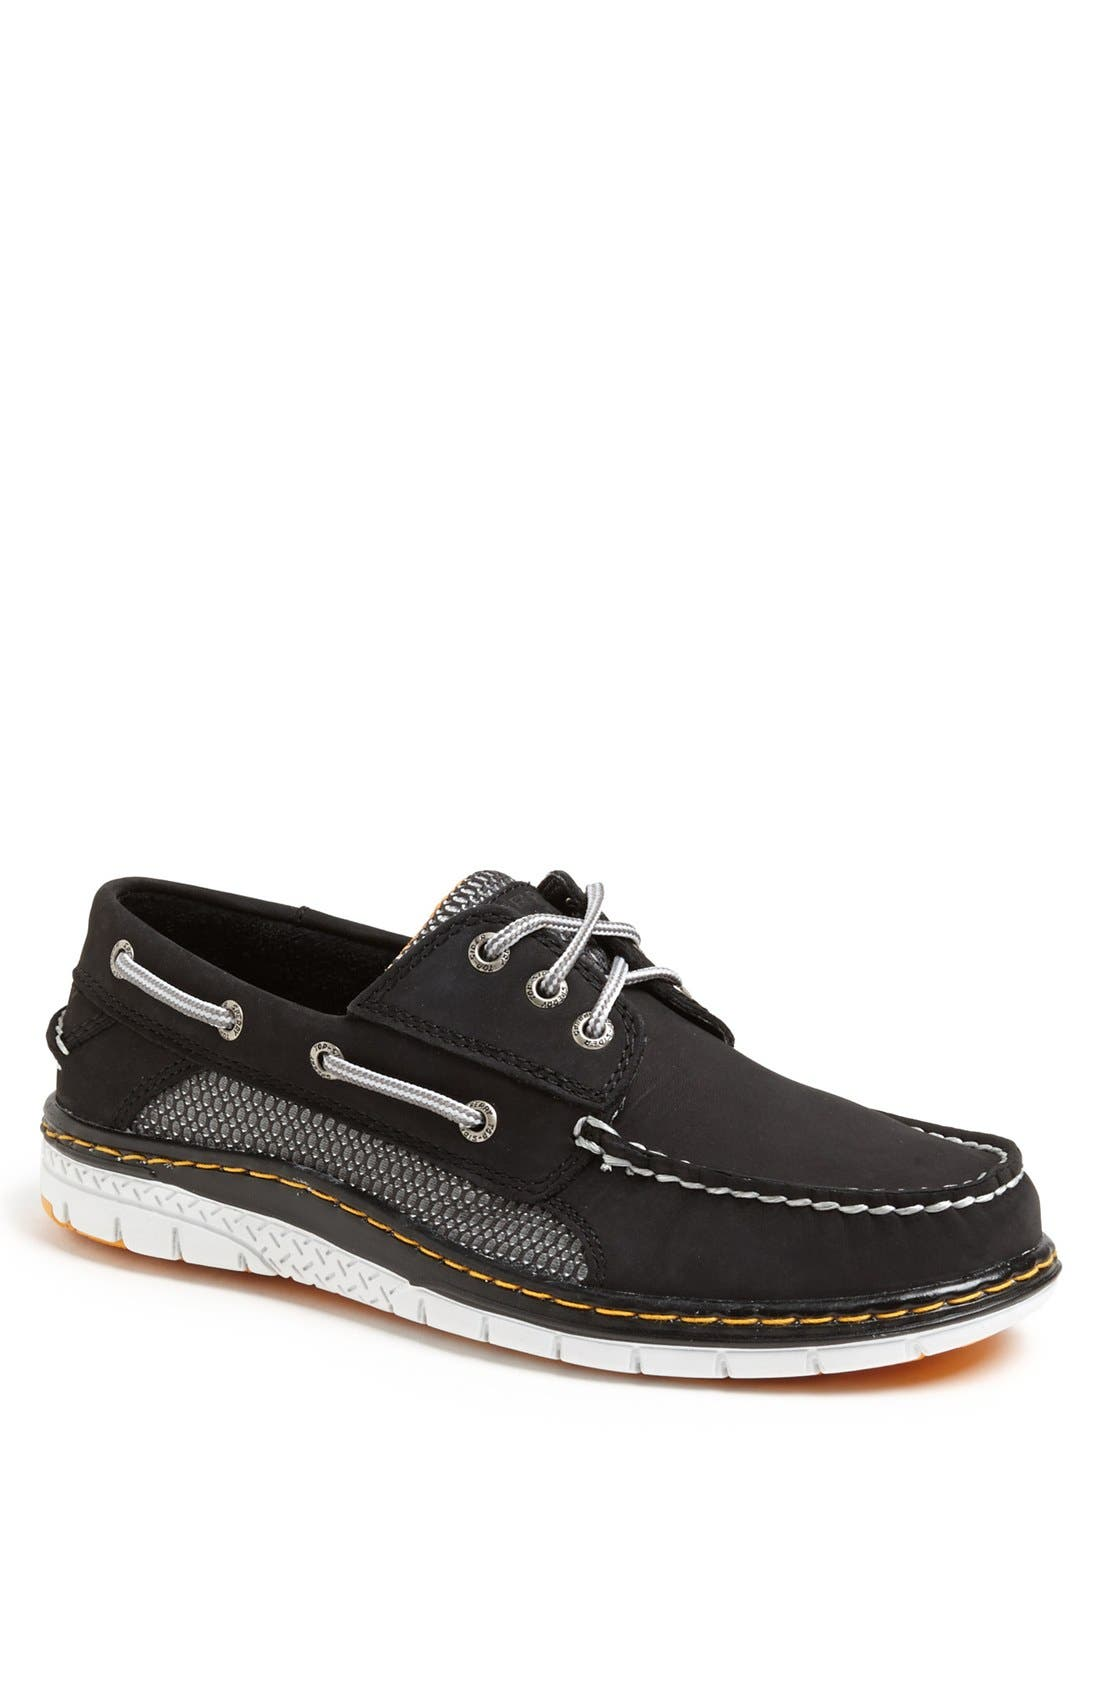 'Billfish Ultralite' Boat Shoe,                         Main,                         color,